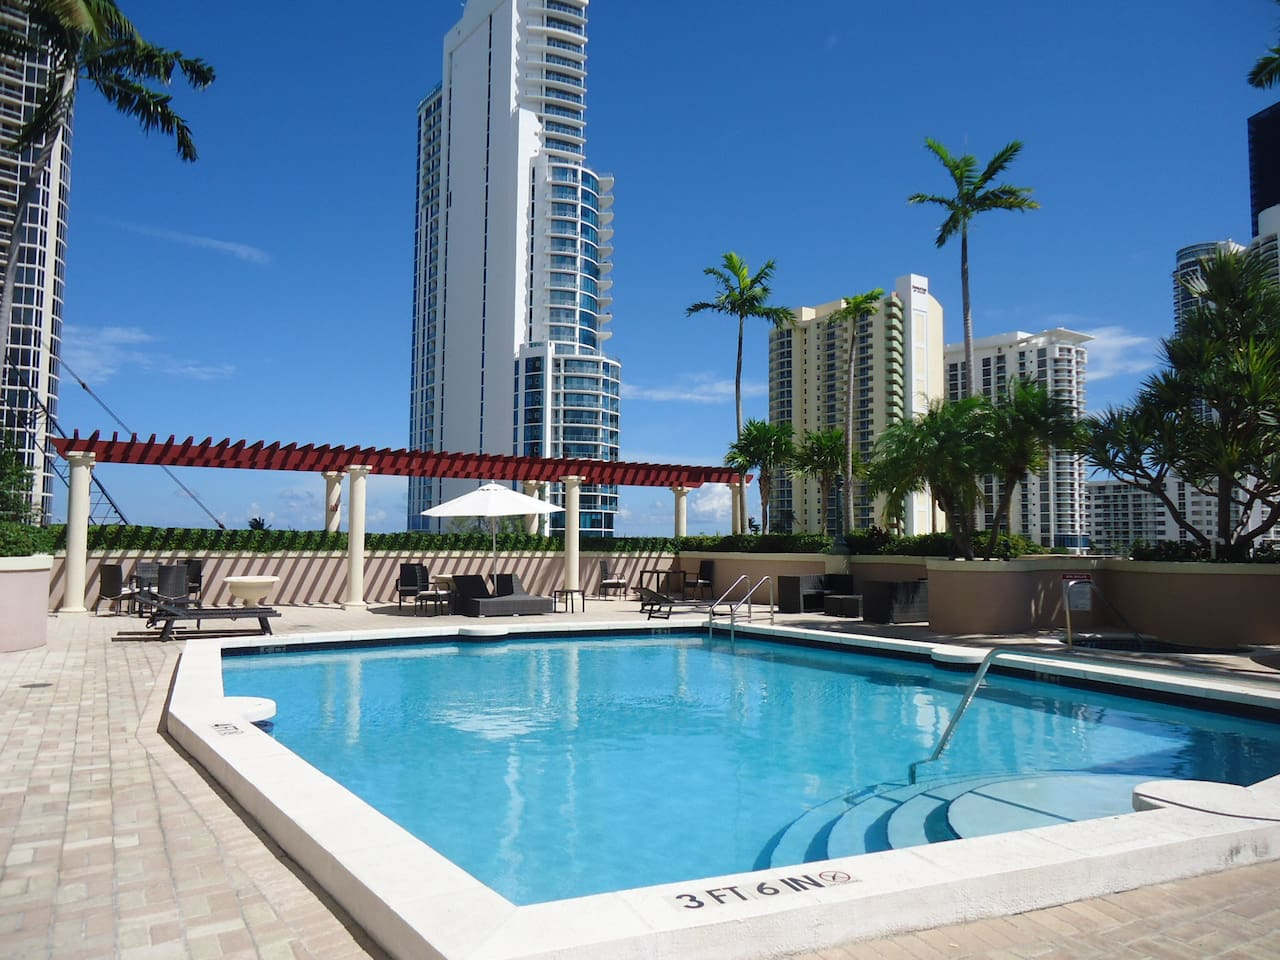 5th floor Pool&sun deck, grand view of ocean just across street.